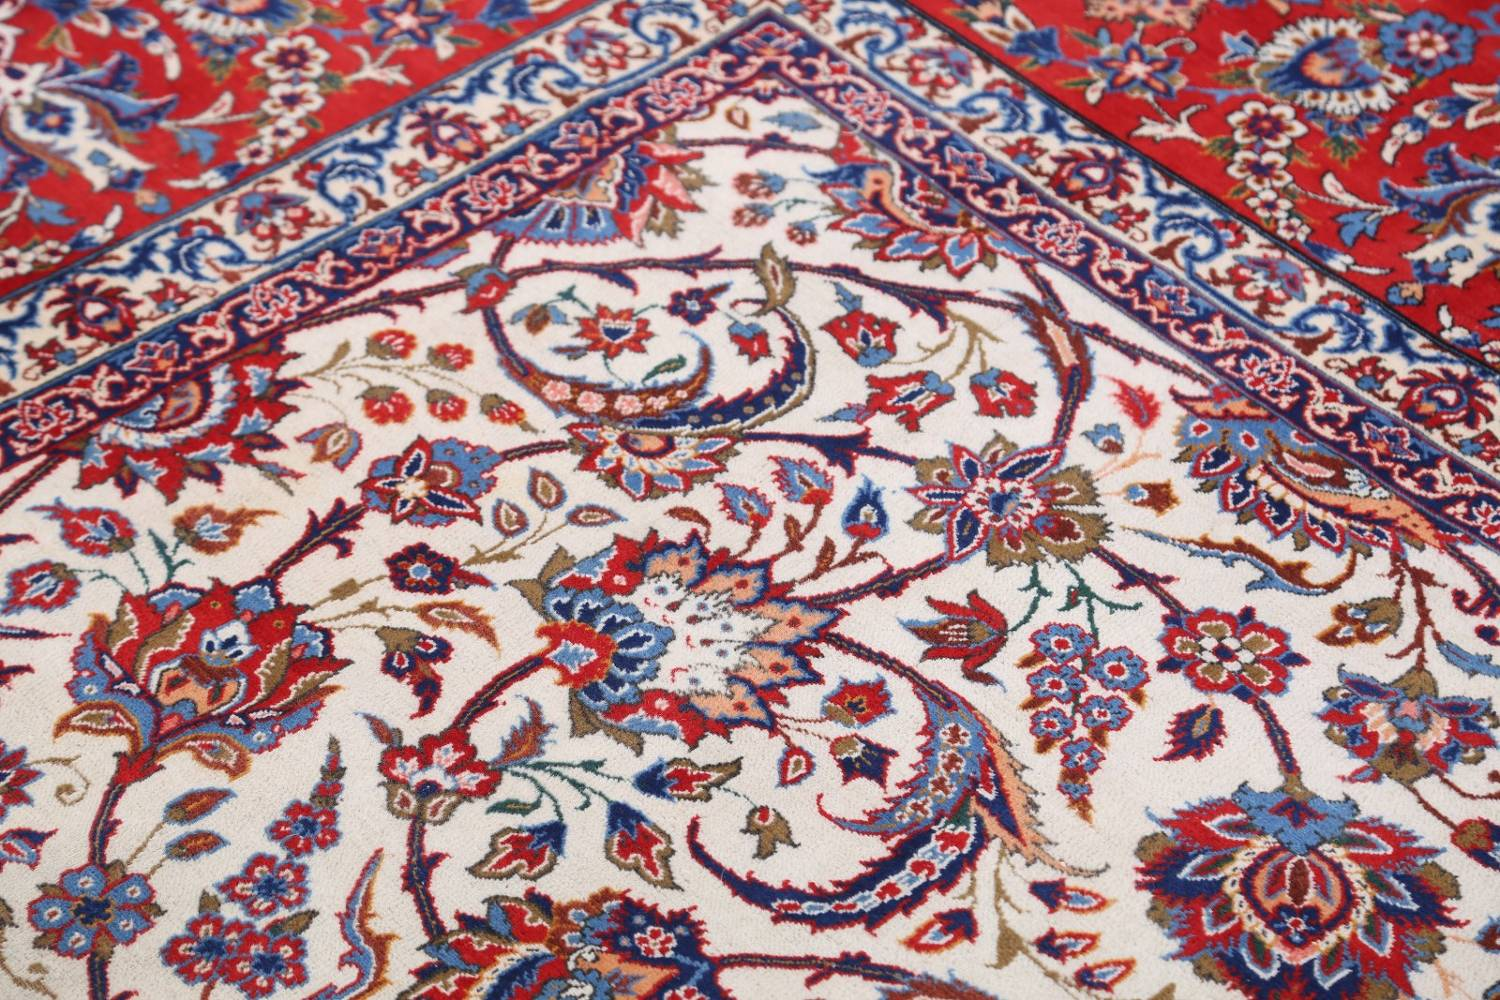 Antique Floral 10x16 Isfahan Persian Area Rug image 14